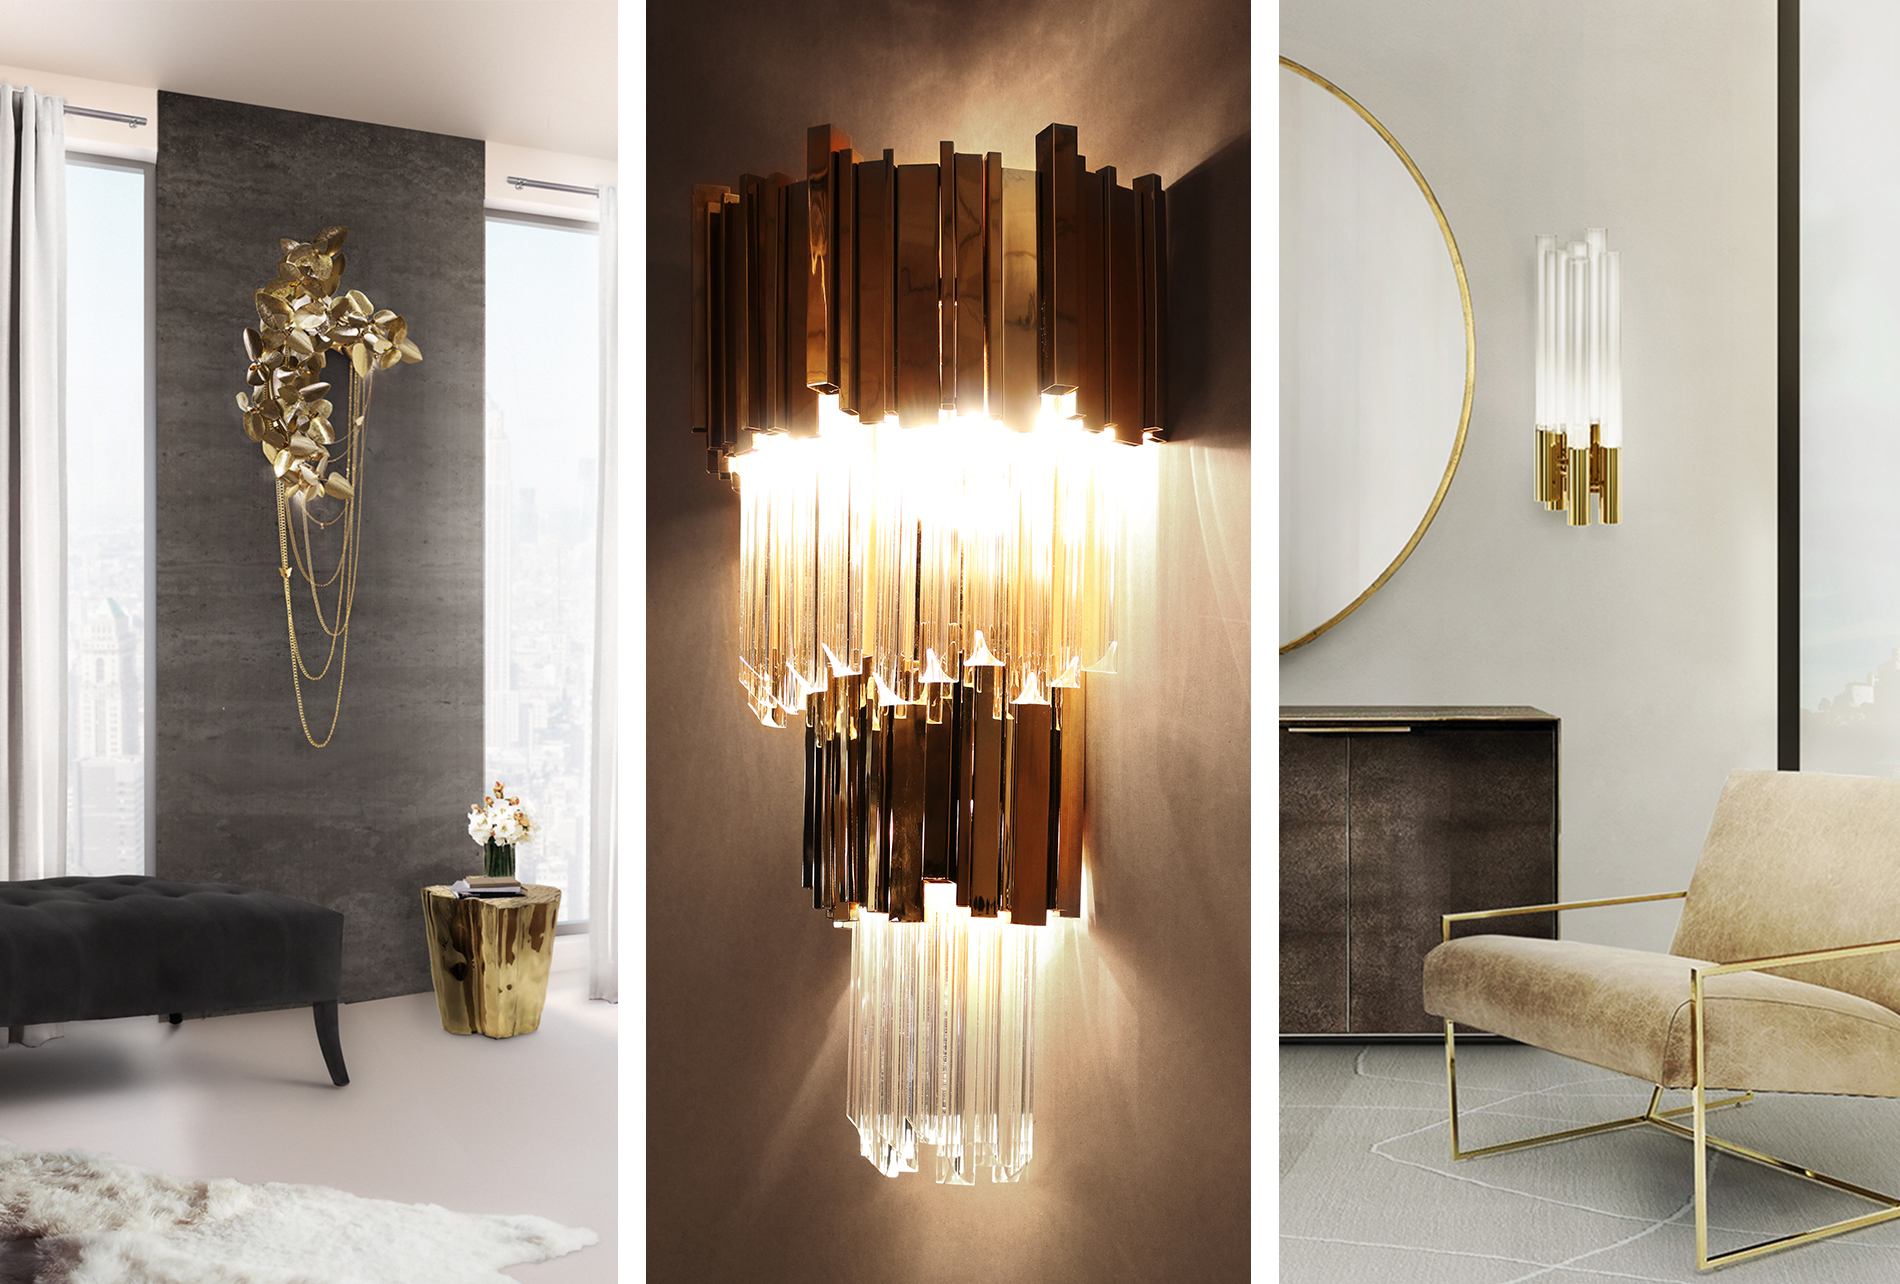 Luxury design: wall lights by Luxxu to create a glamorous decor Elegant Entryways 7 Elegant Entryways for the Home of Your Dreams Luxxu Wall Lamps Elegant Entryways 7 Elegant Entryways for the Home of Your Dreams Luxxu Wall Lamps